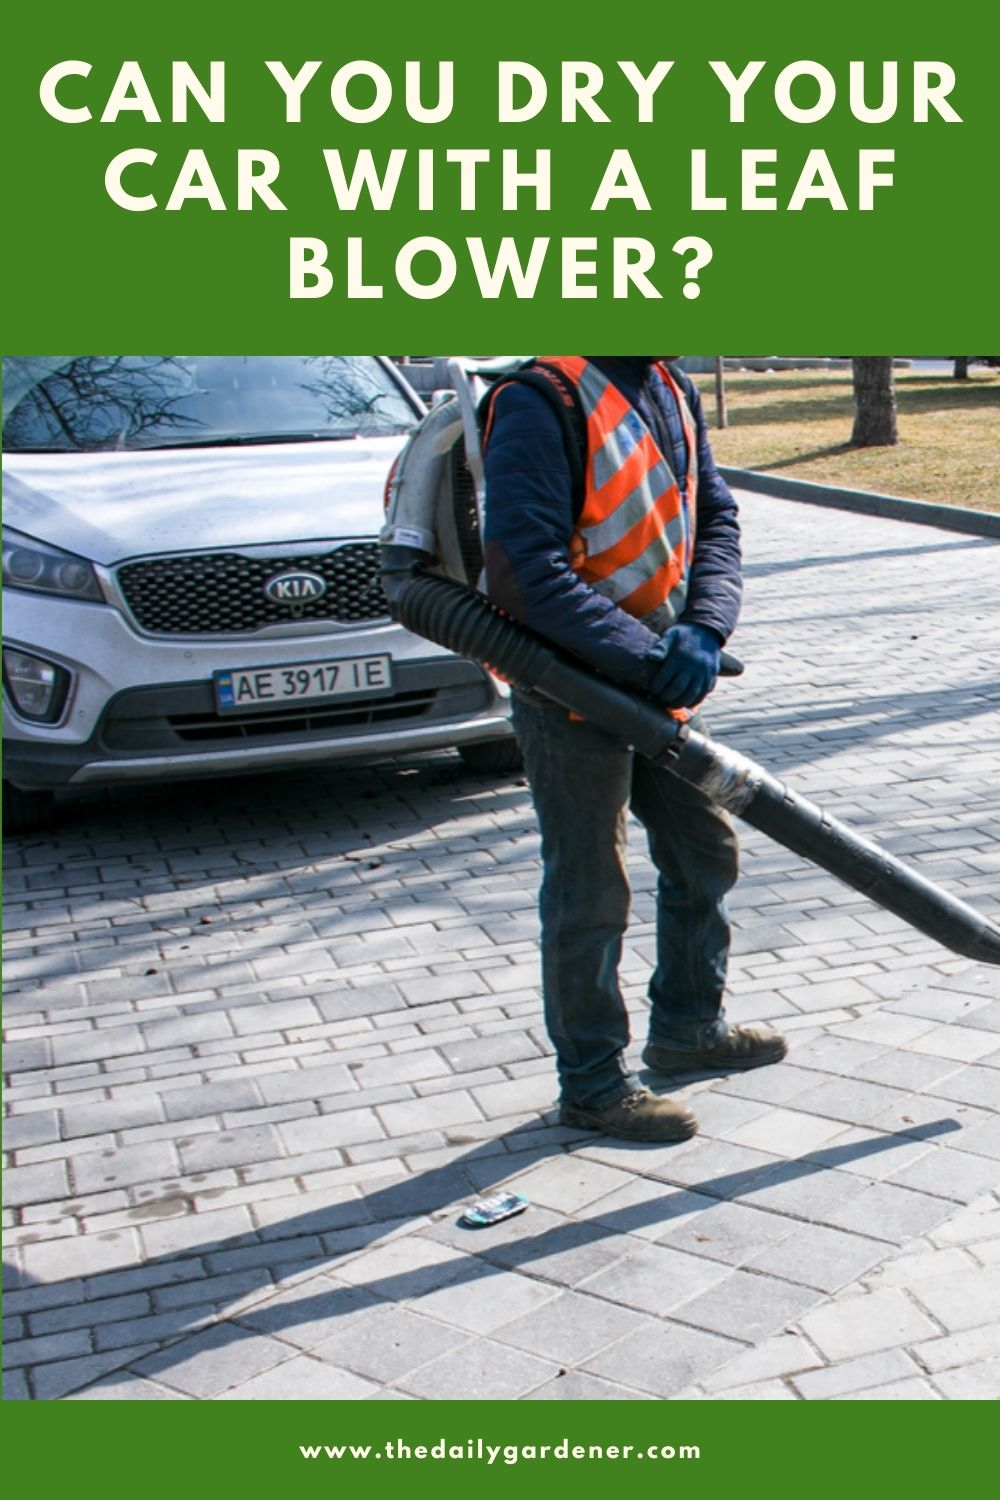 Can You Dry Your Car with a Leaf Blower (9 Tips for How to Do It) 1